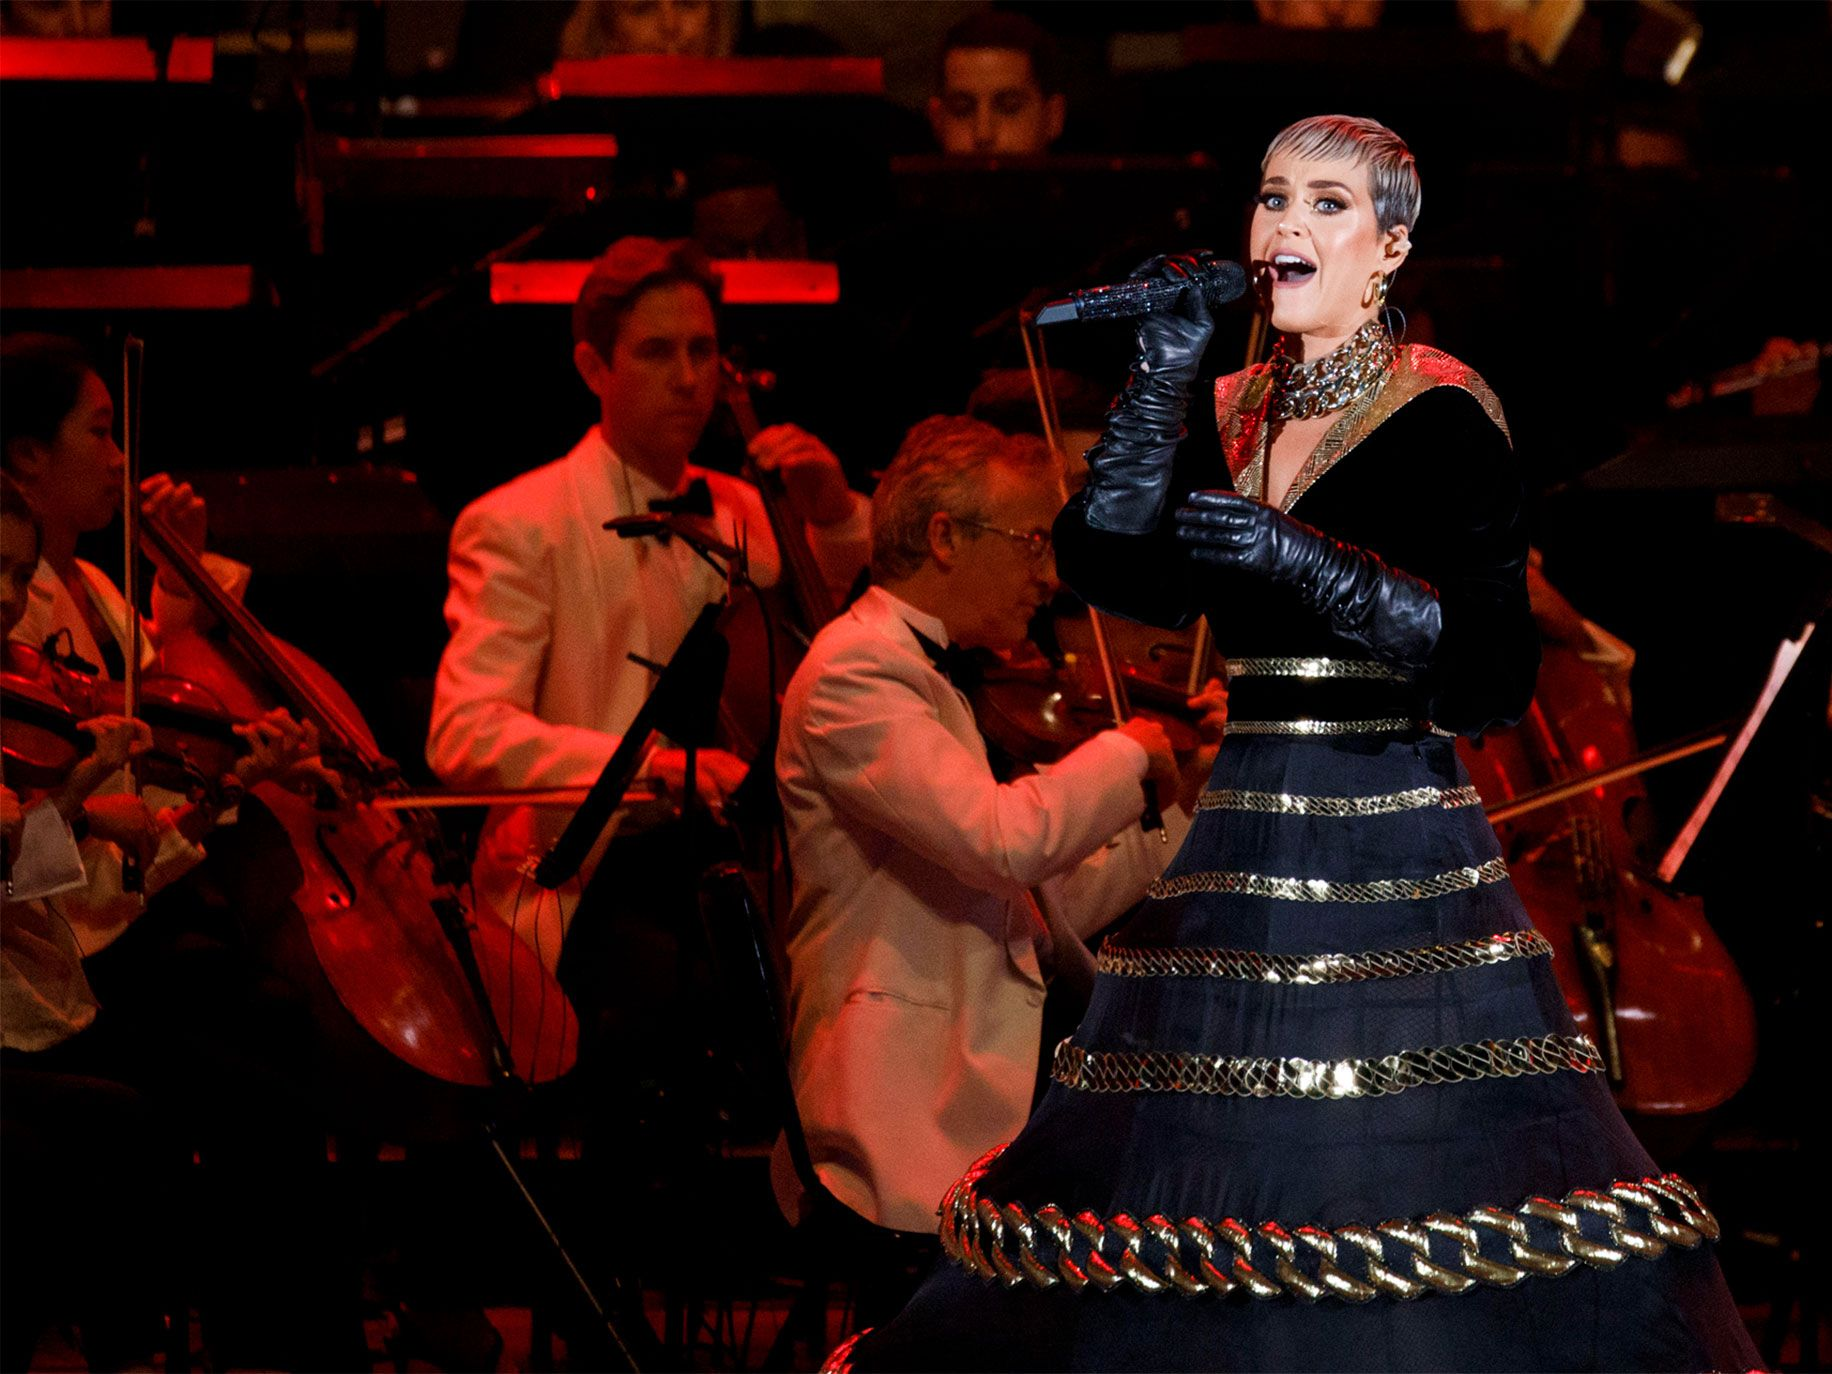 Singer Katy Perry was one of several pop stars who performed at the L.A. Philharmonic's ''Celebrate LA!'' concert at the Hollywood Bowl in Los Angeles.